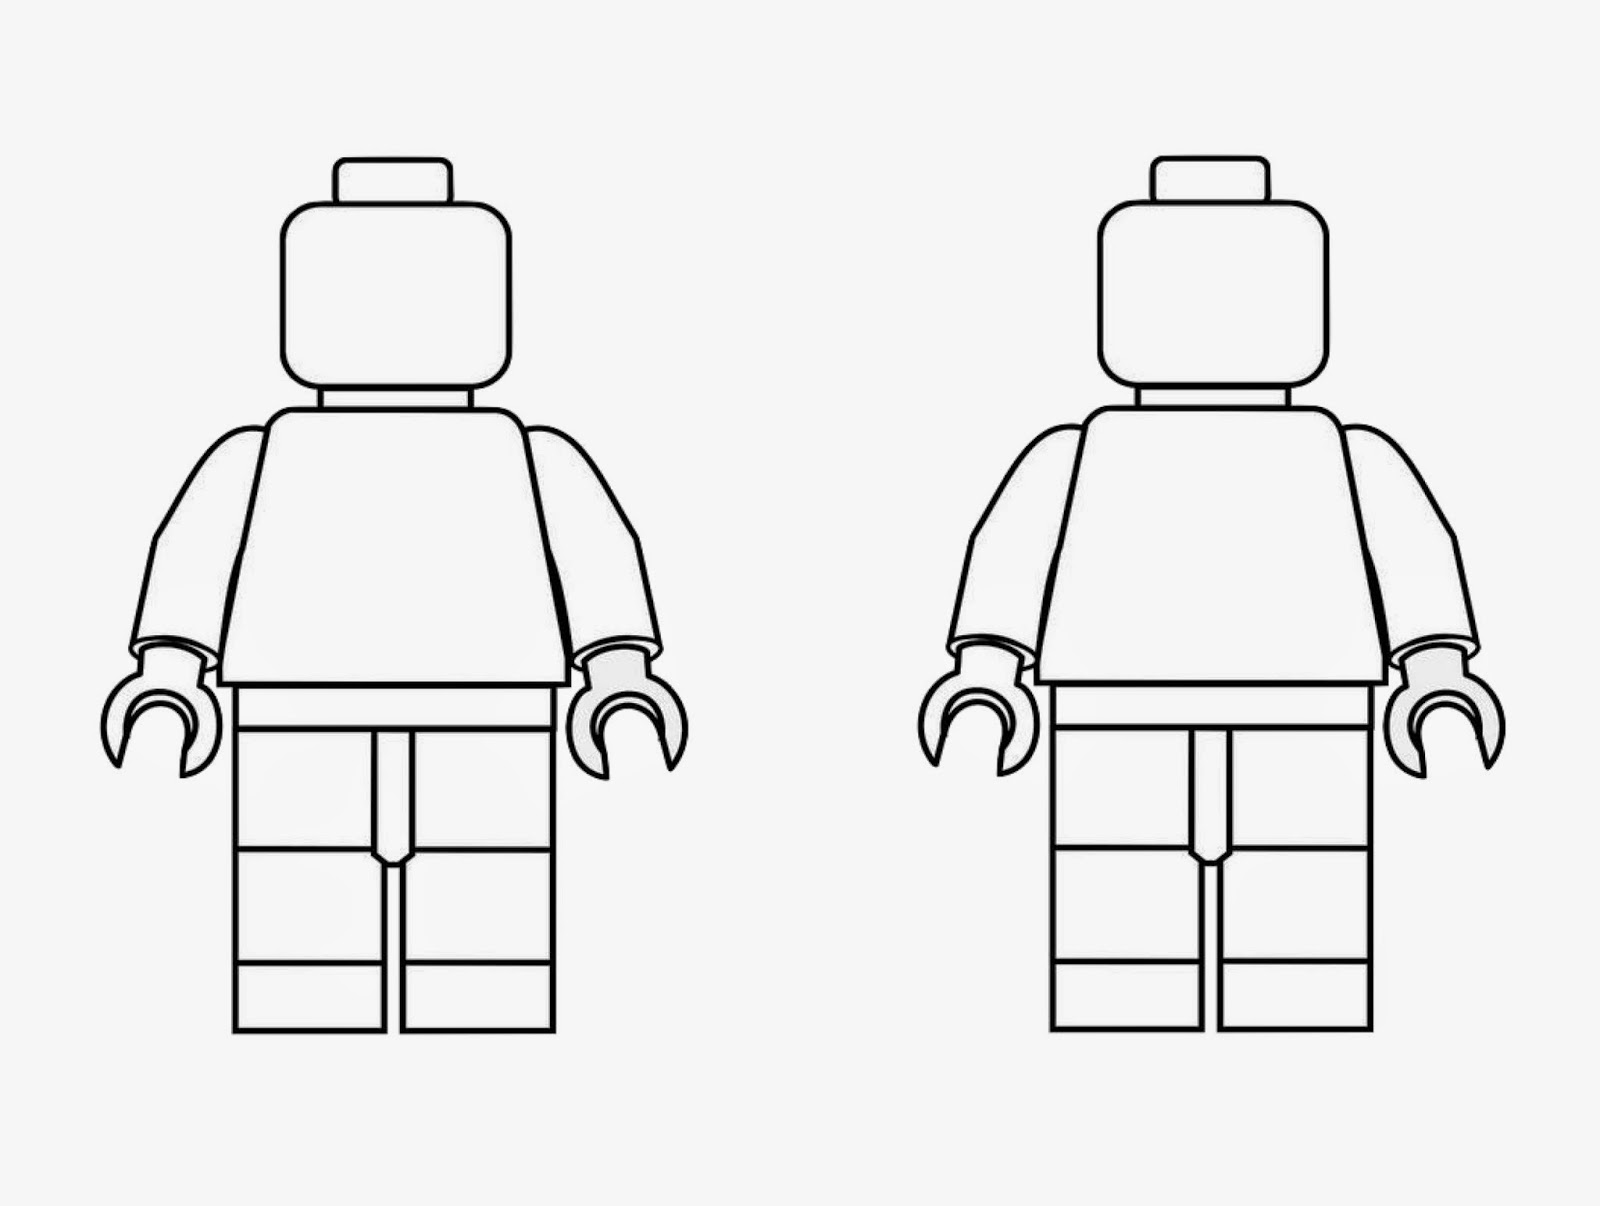 lego man coloring pages free - photo#1